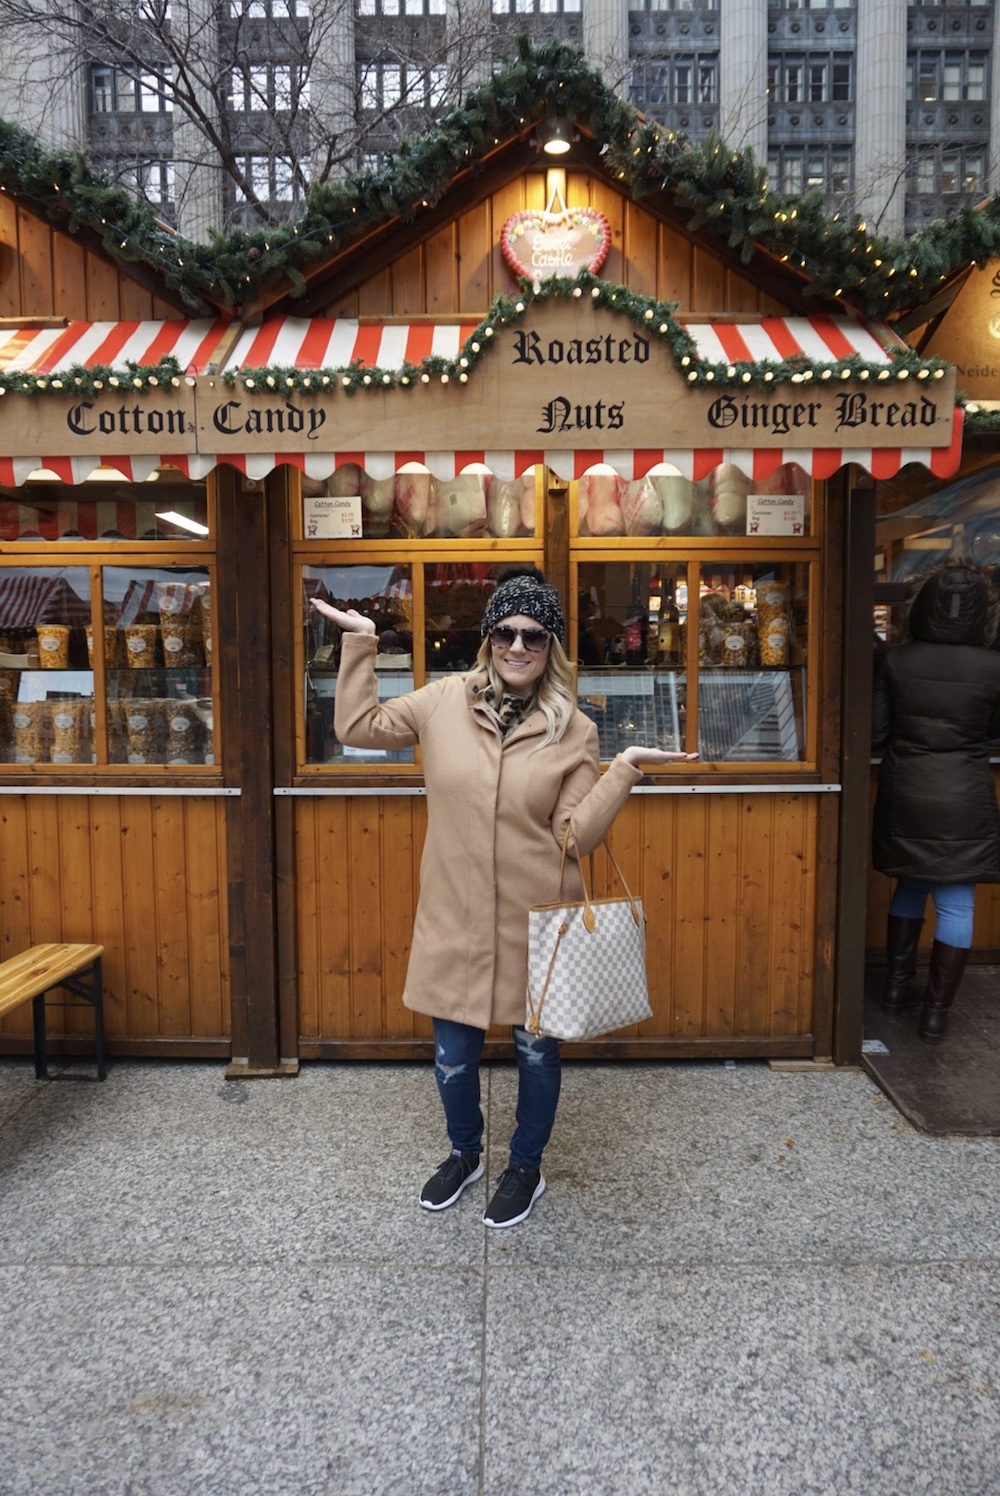 Christkindlmarket is one of the Best things to do in Chicago during the holidays